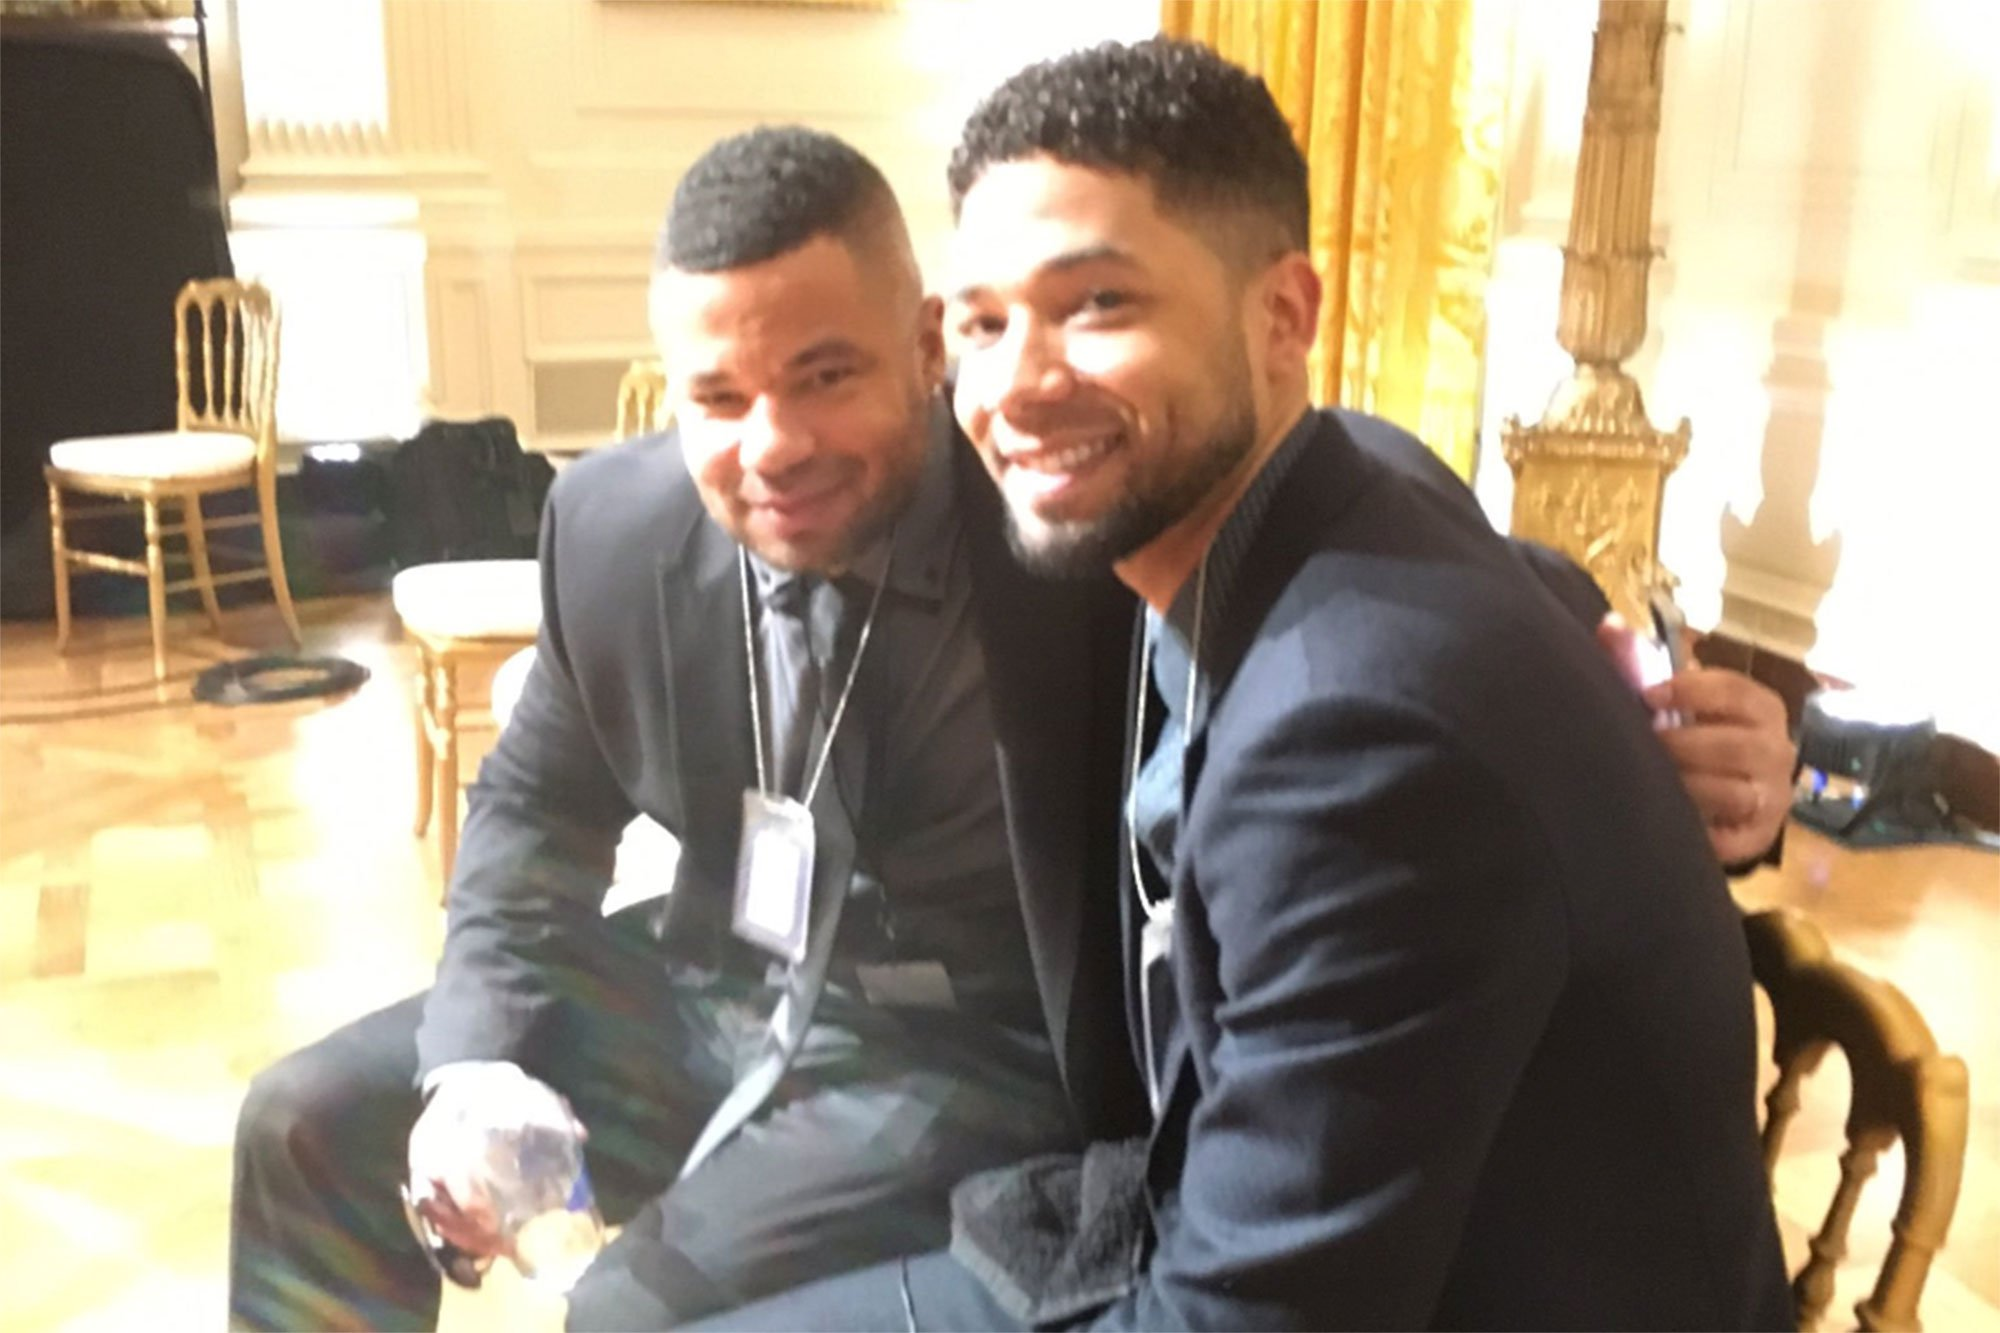 Jussie Smollett's brother defends him over 'unjust' charges in powerful essay